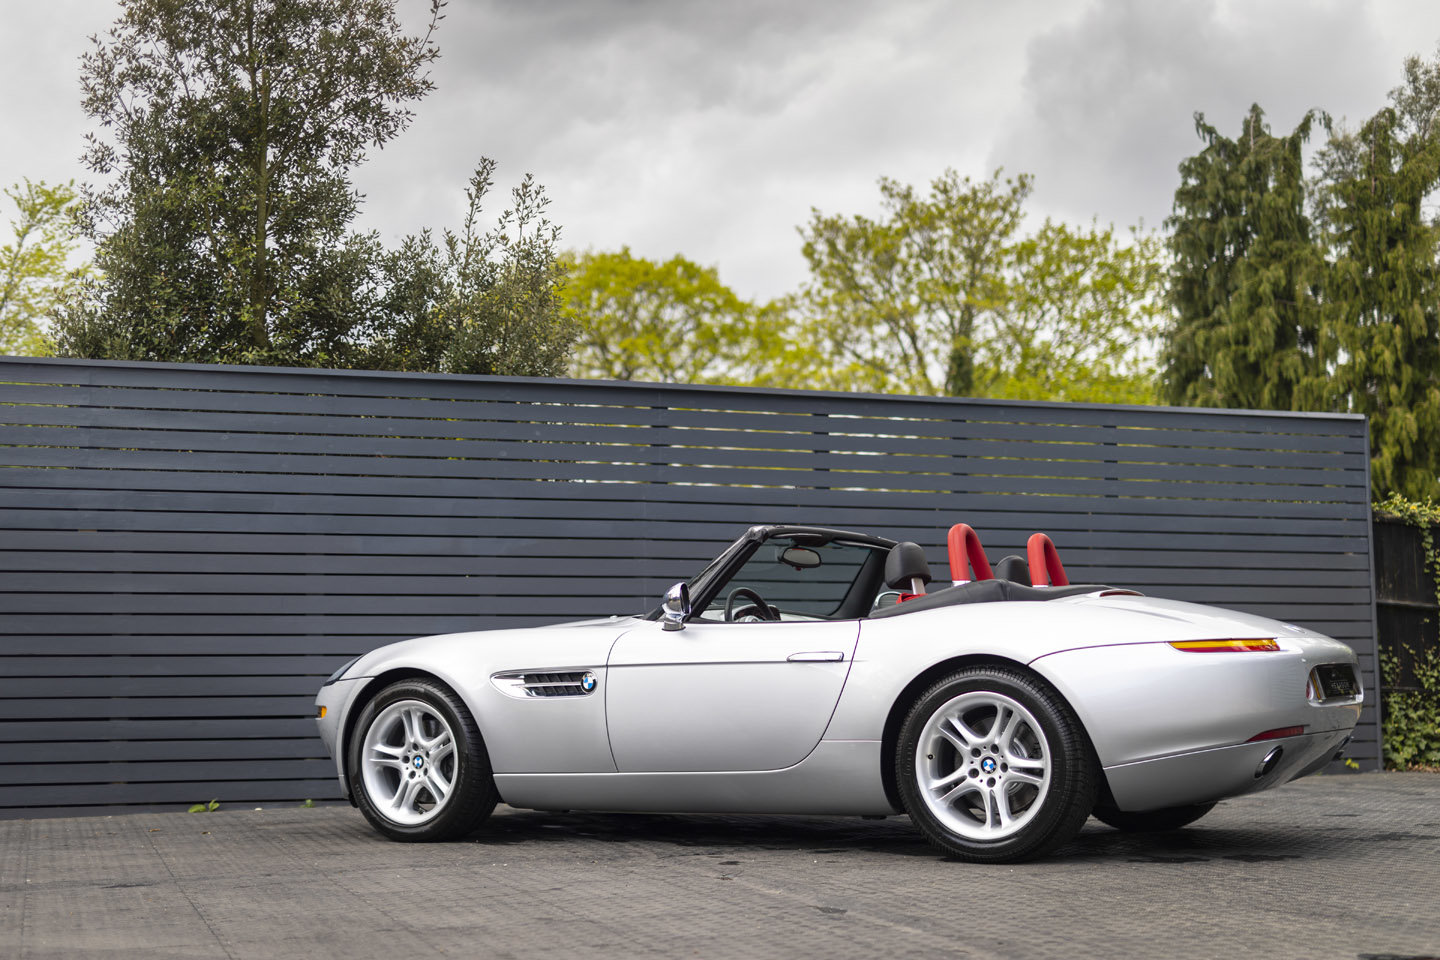 2001 BMW Z8 Roadster ONLY 10500 MILES UK CAR For Sale (picture 20 of 22)